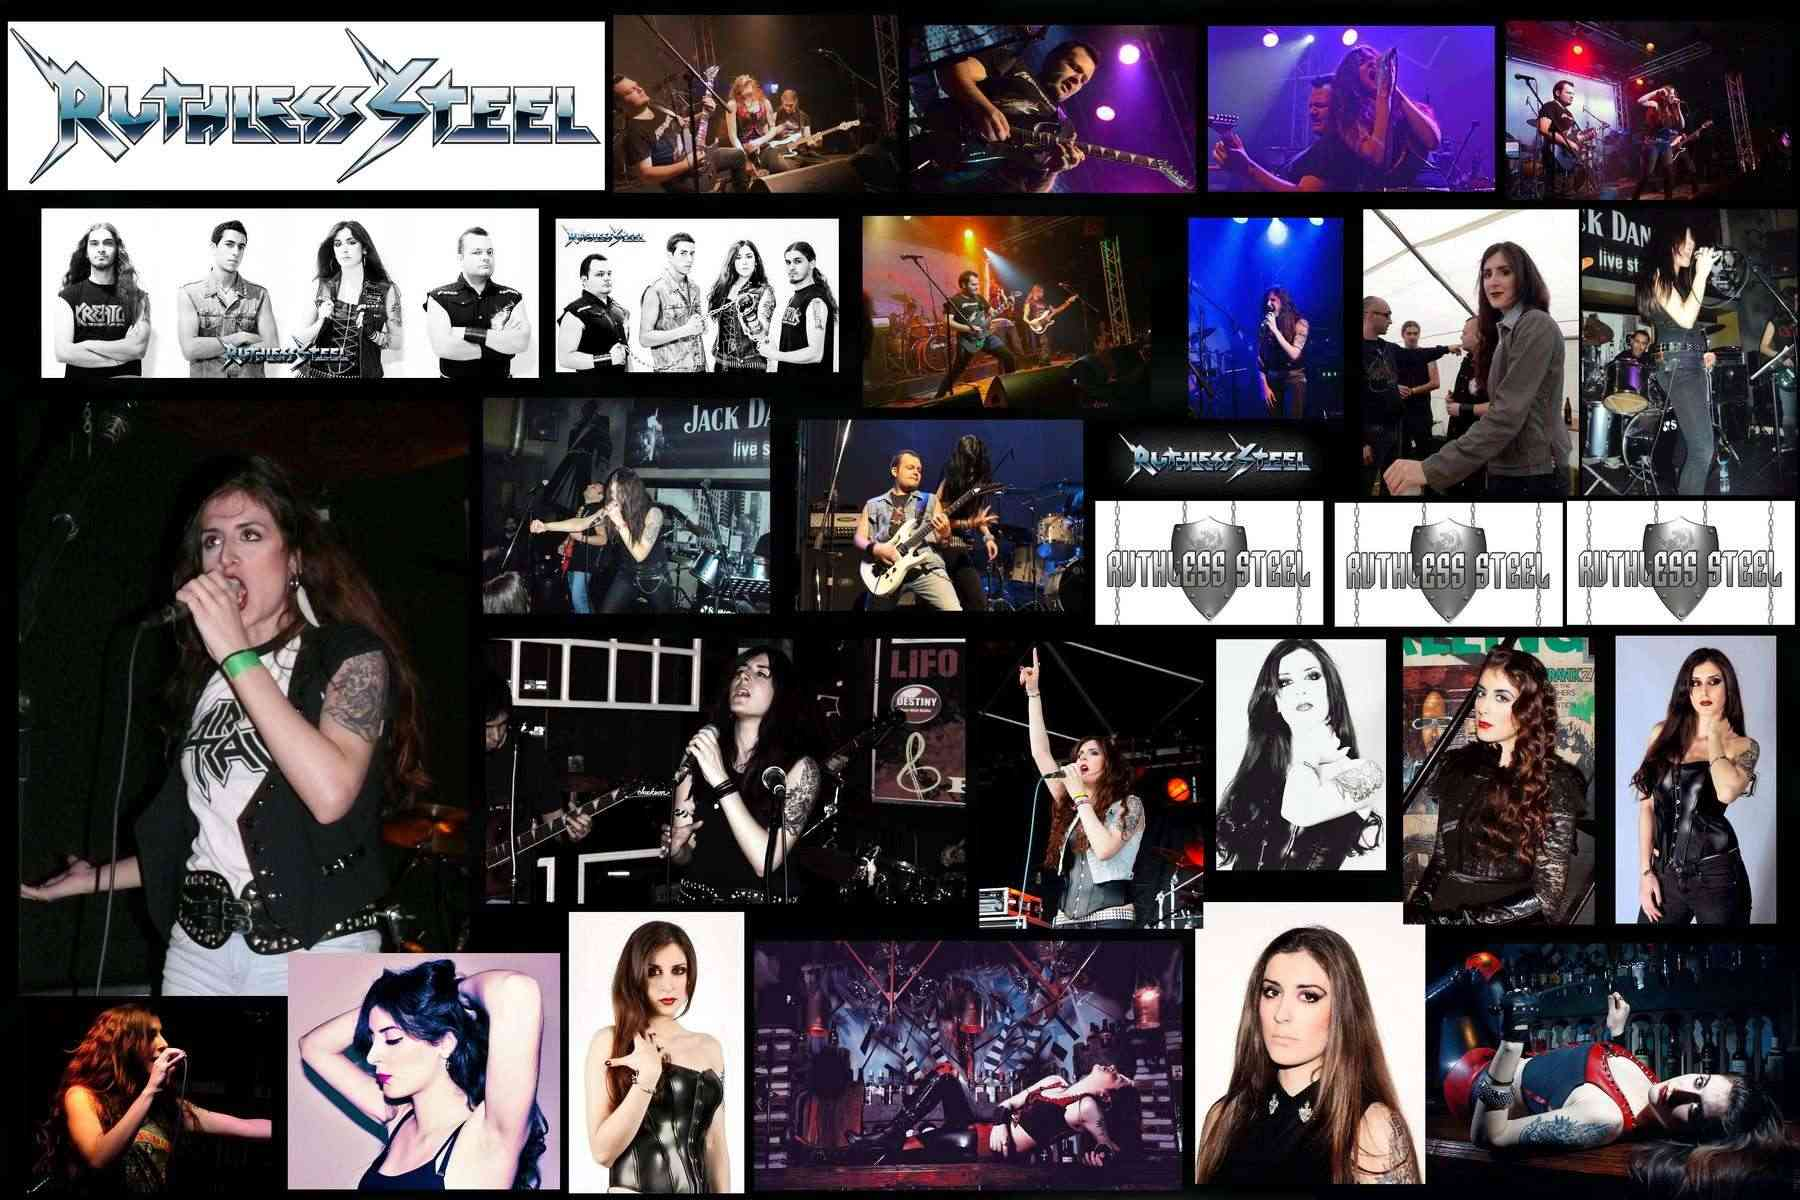 Mes petits montages photos ... - Page 4 Ruthle10